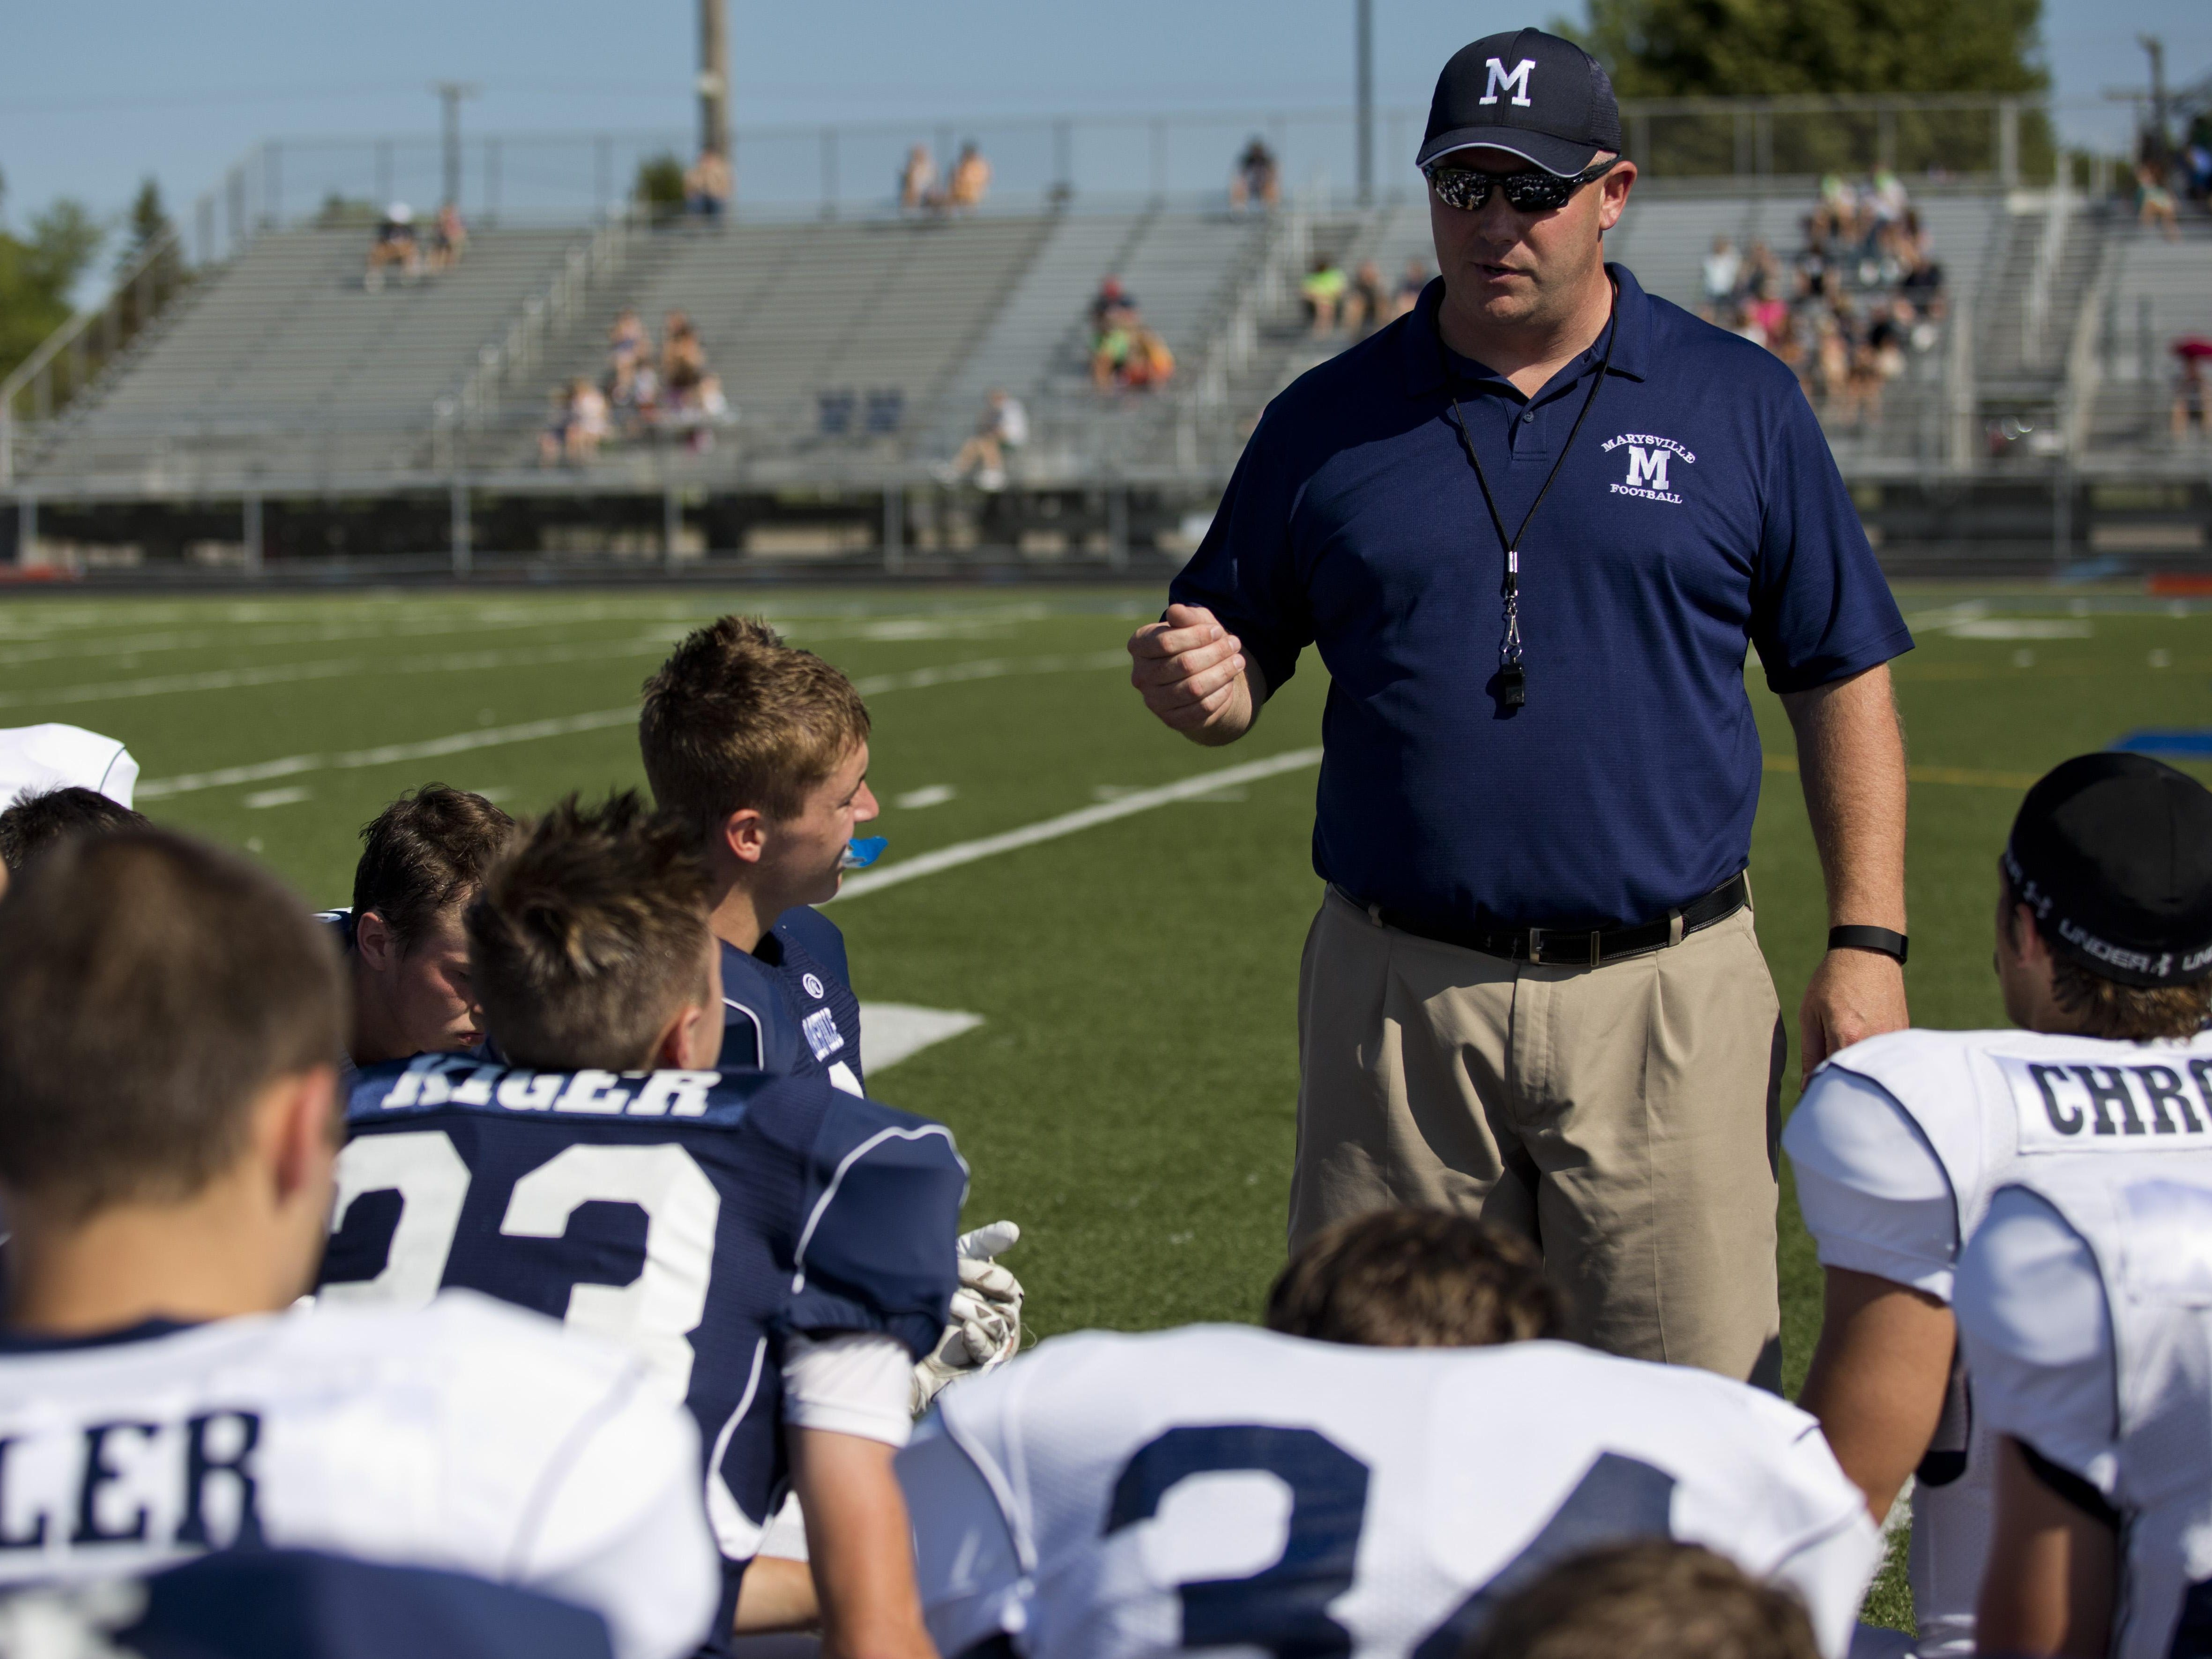 Coach Mark Caza is preaching against overconfidence as his Vikings enter the season in the competitive Macomb Area Conference Gold Division.